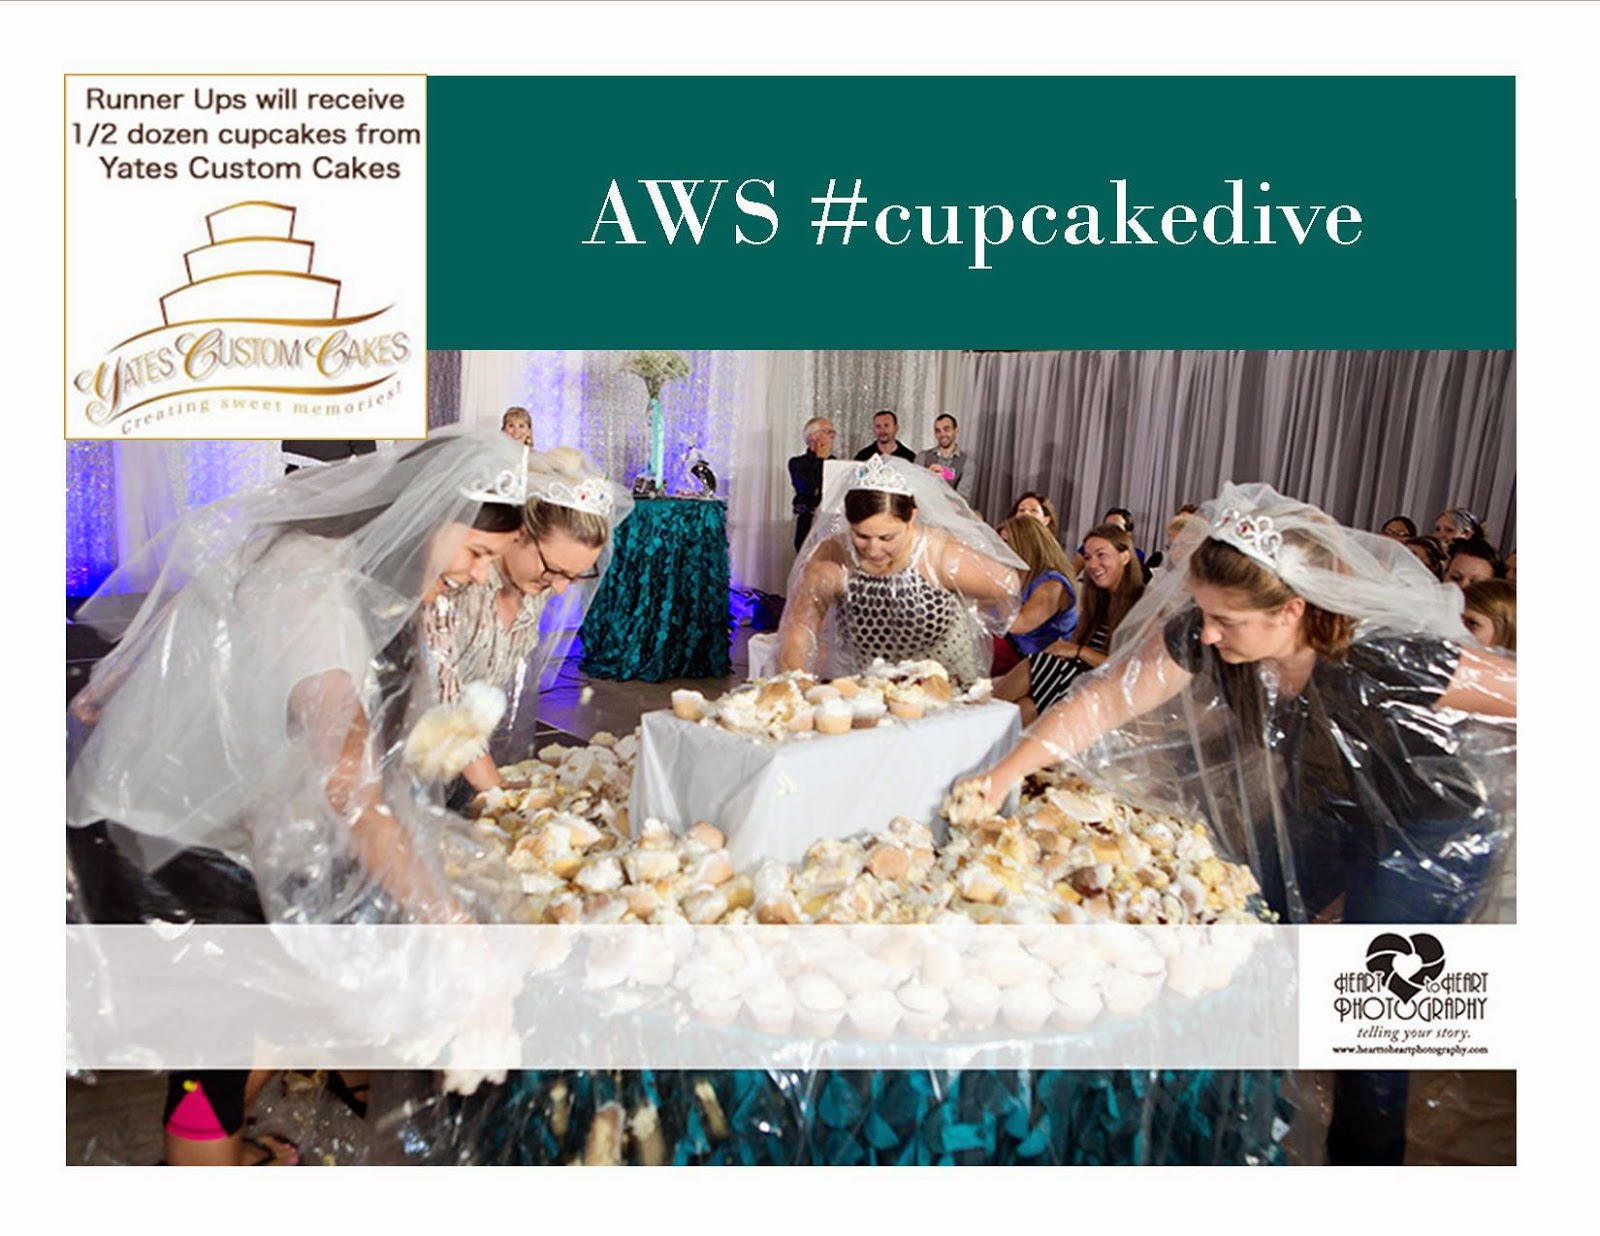 http://www.ancasterweddingshow.com/cupcakedive.html